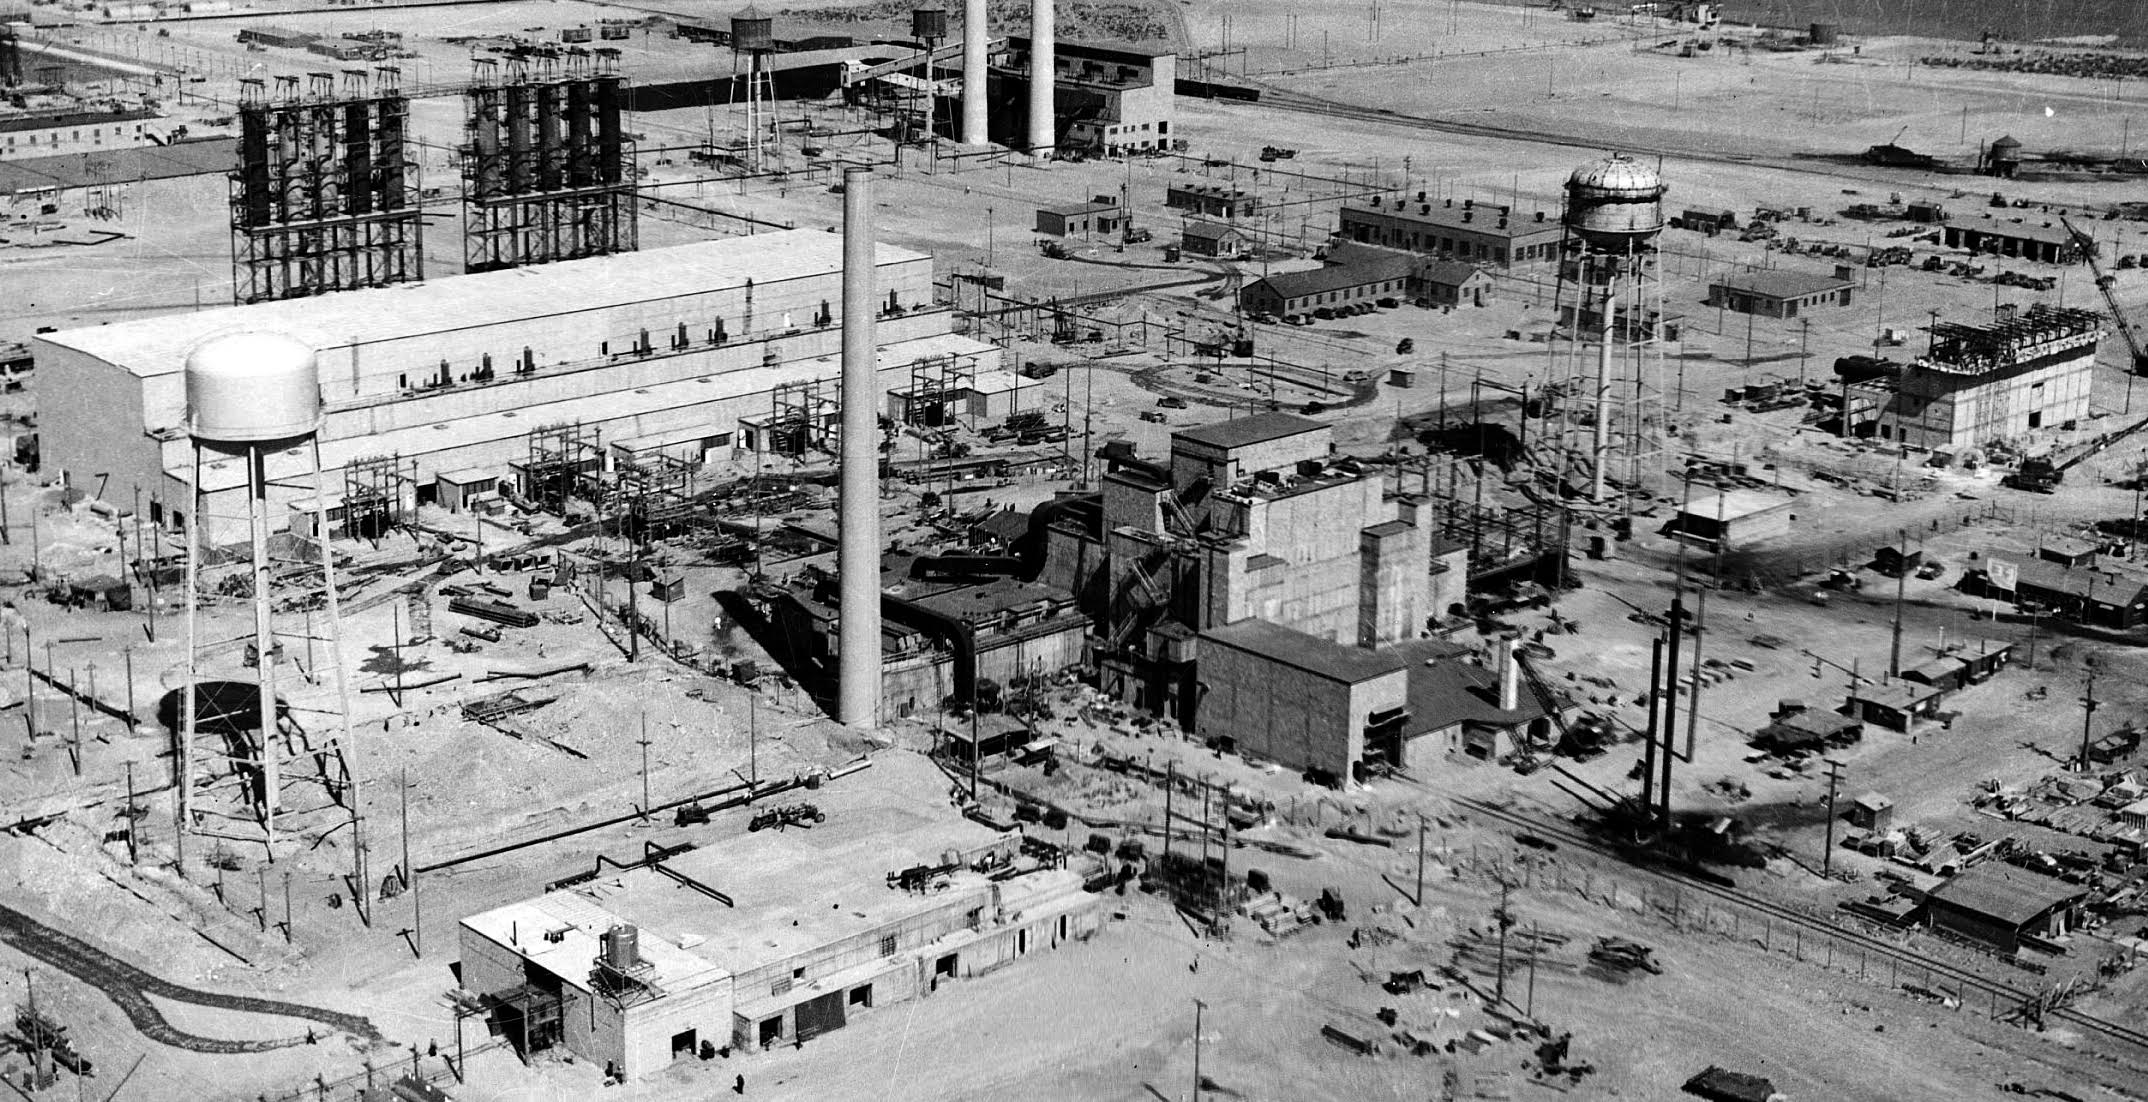 The Hanford B Reactor, near Richland, Washington, under construction, 1943. Image courtesy the US Department of Energy, Hanford Collection (HASI.1996.001.1350).